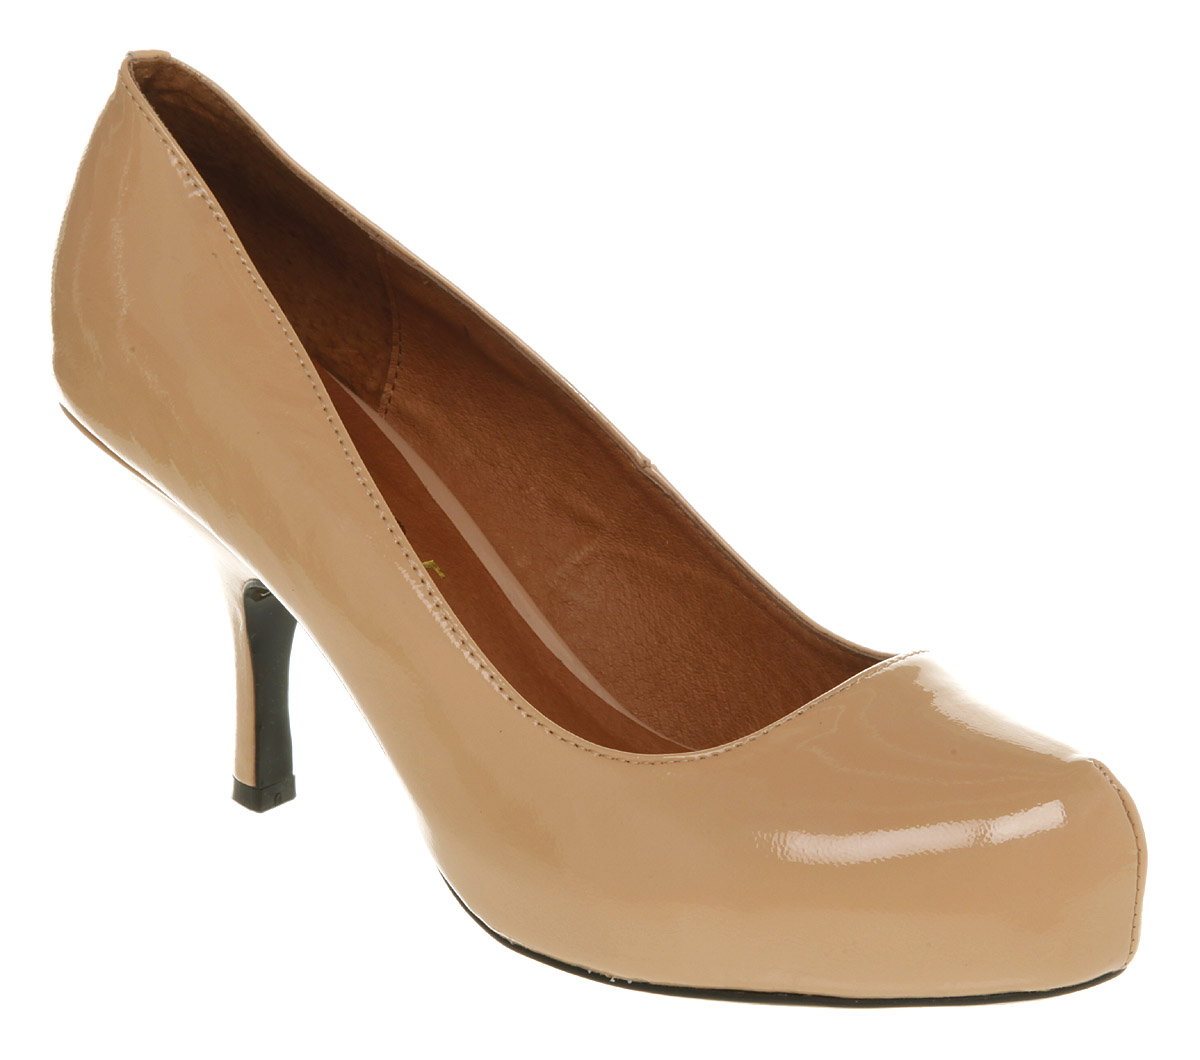 Womens-Office-Dorothys-Friend-Nude-Patent-Heels